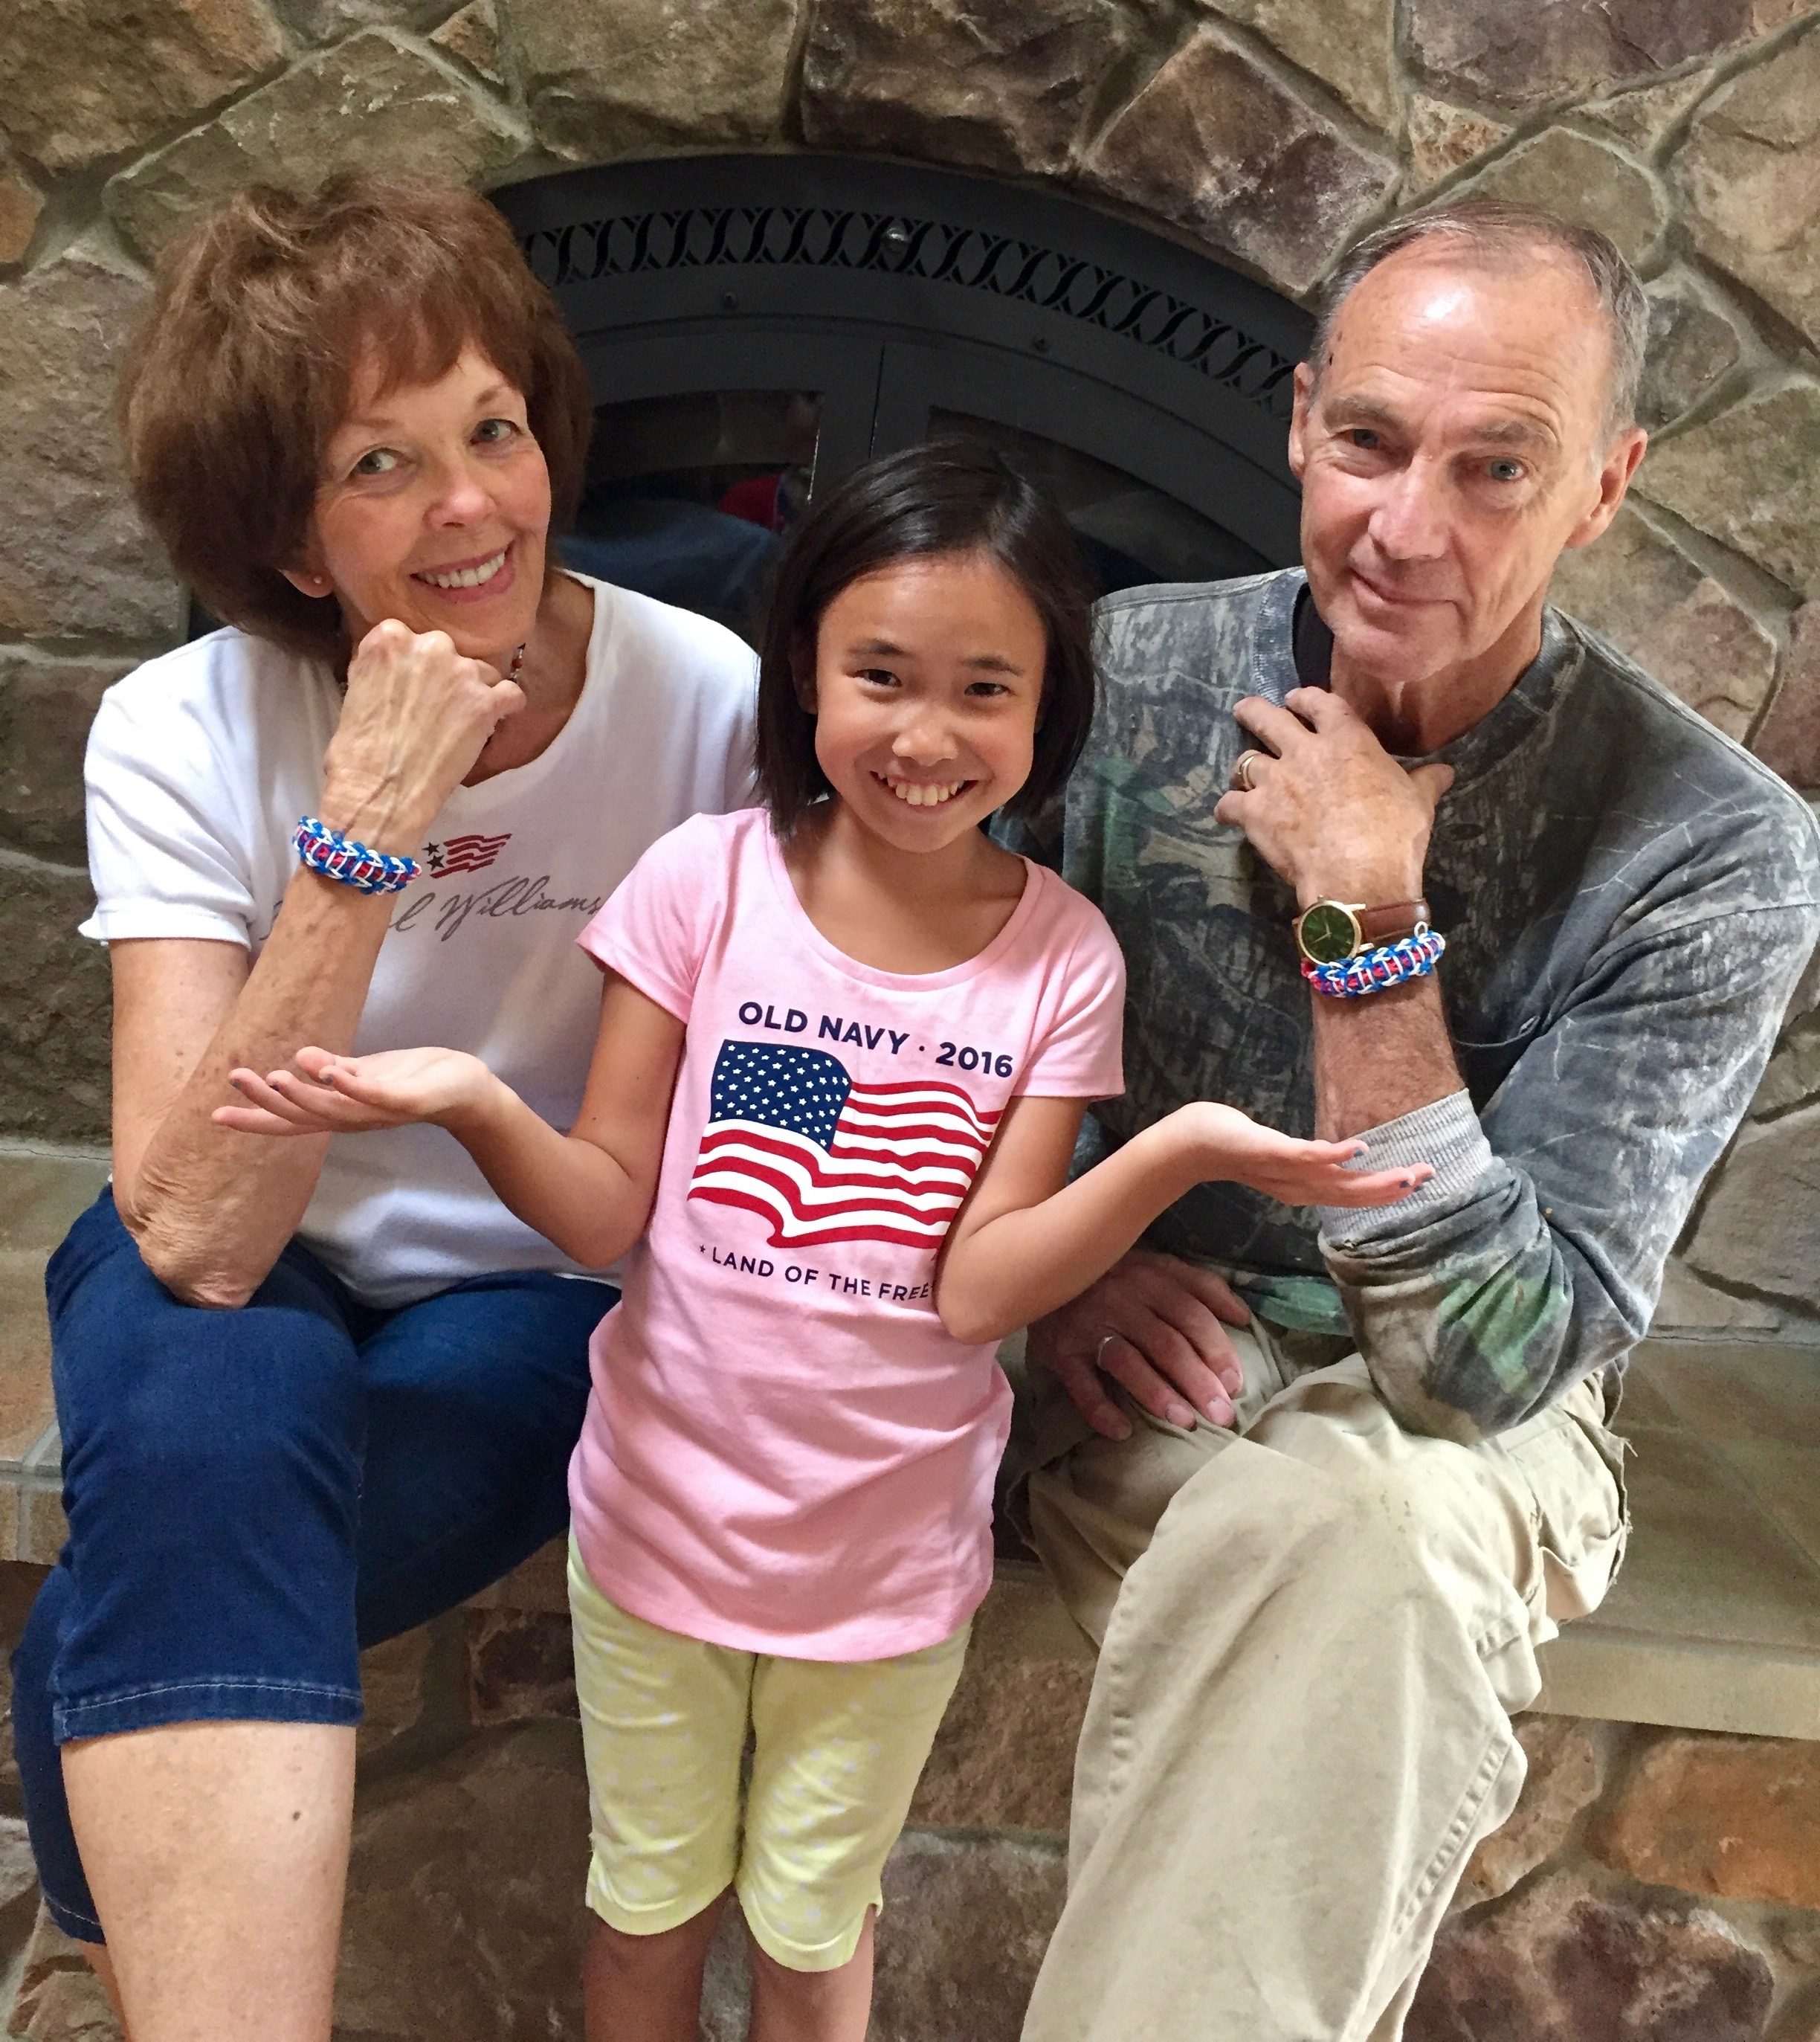 Addie used her Rainbow Loom to create July 4th rubber-band bracelets for Grandma and Grandpa Hall